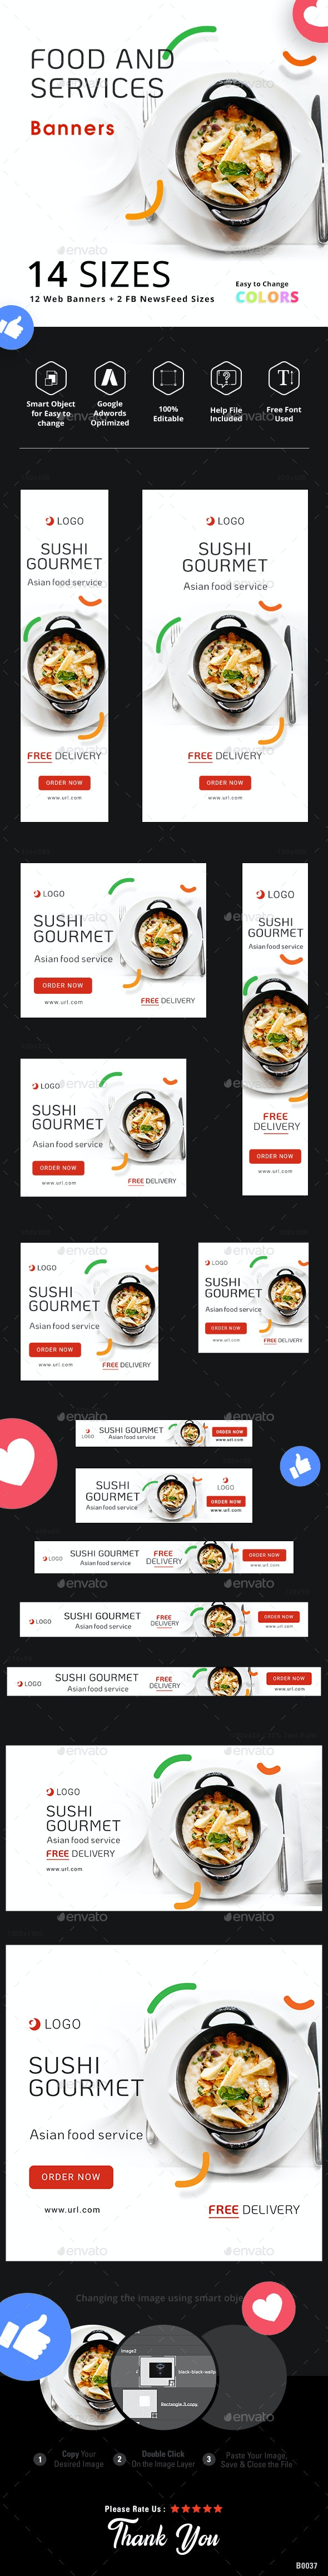 Food and Services Web Banner Set - Banners & Ads Web Elements